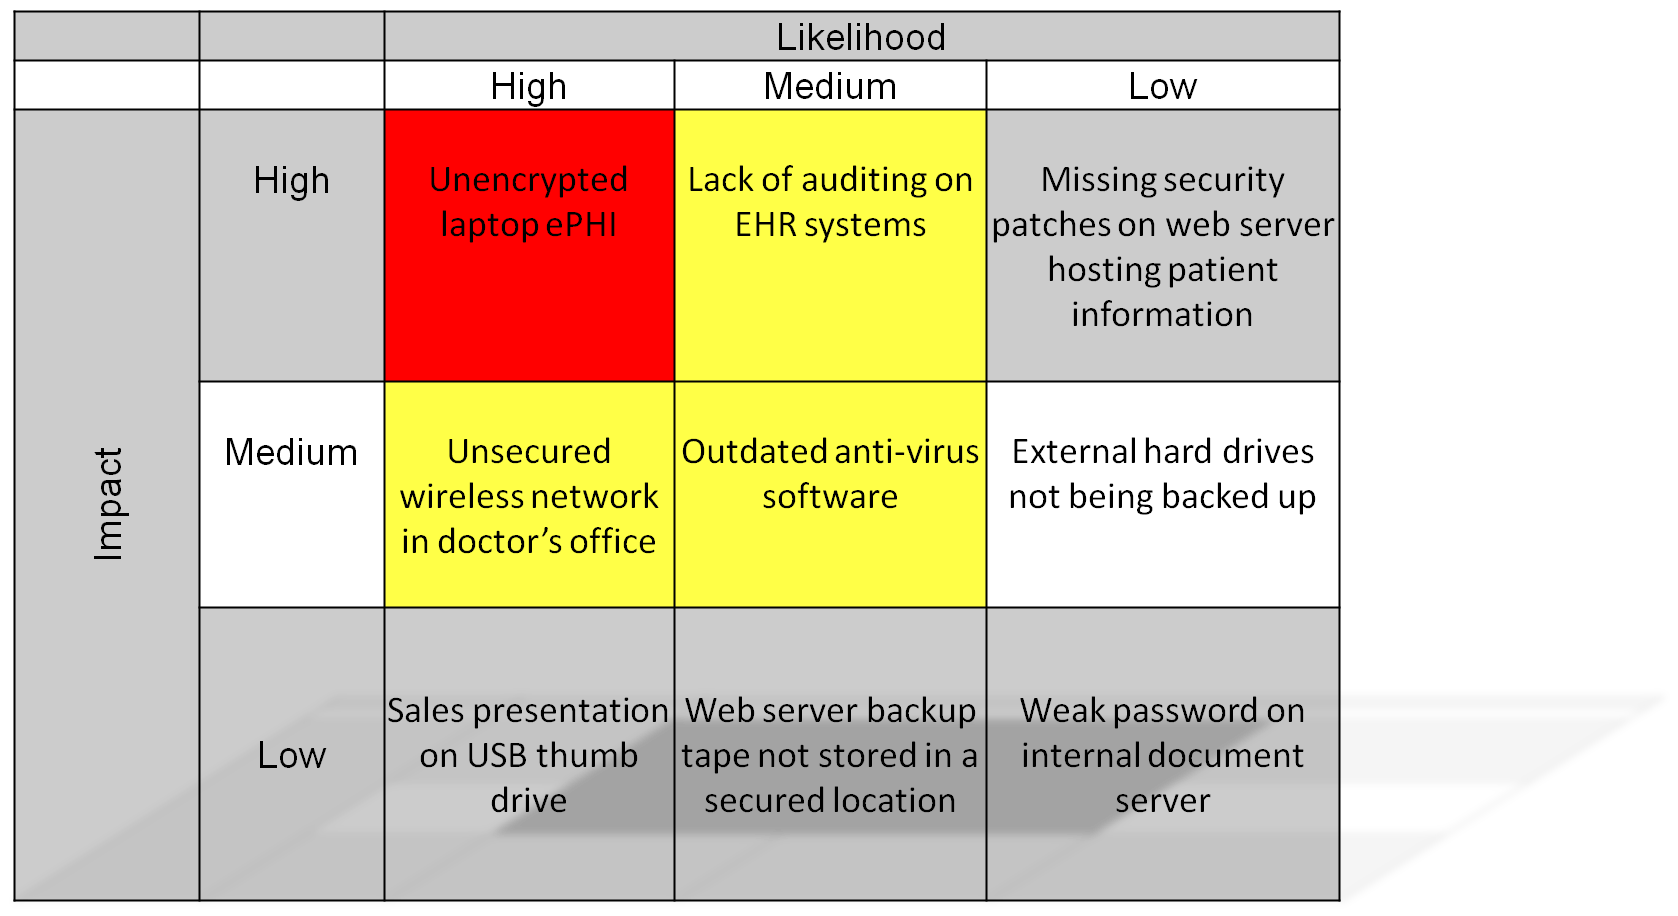 hipaa-security-risk-analysis